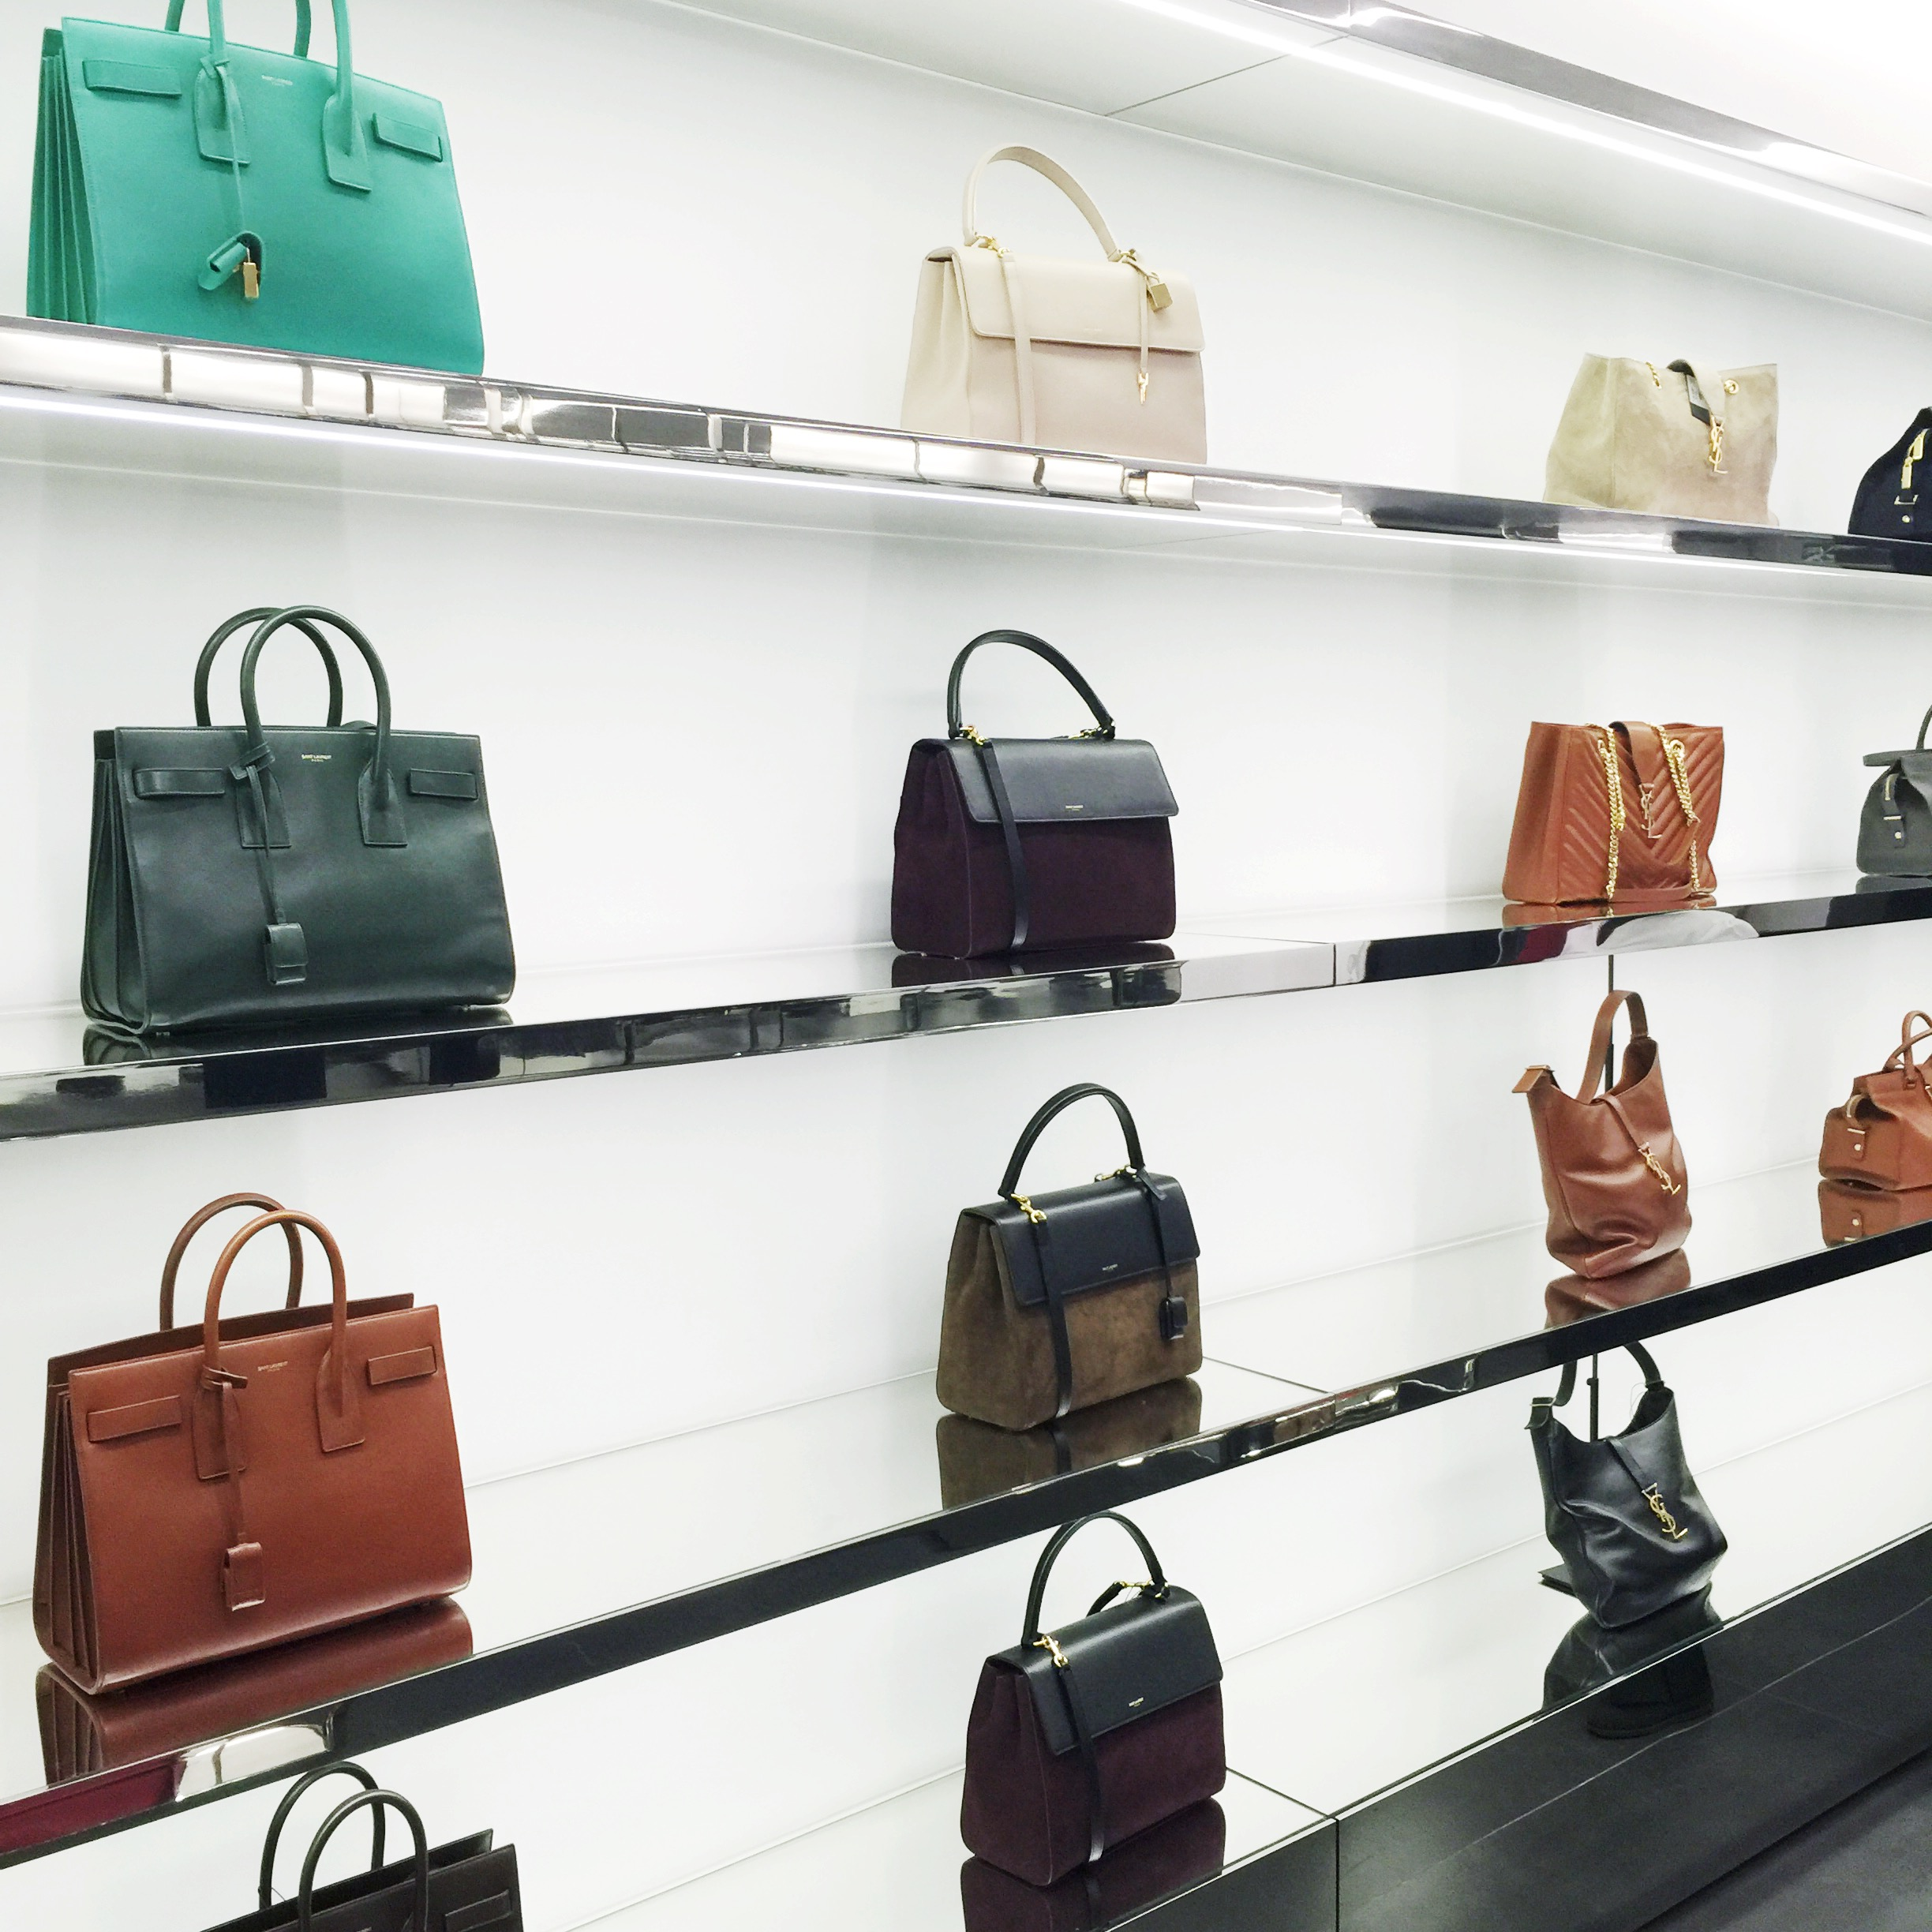 22161b05a5 Talking about bags… My intention was to to scoop up one from either Saint  Laurent or Celiné – two of my go-to bag designers. And although there was a  great ...